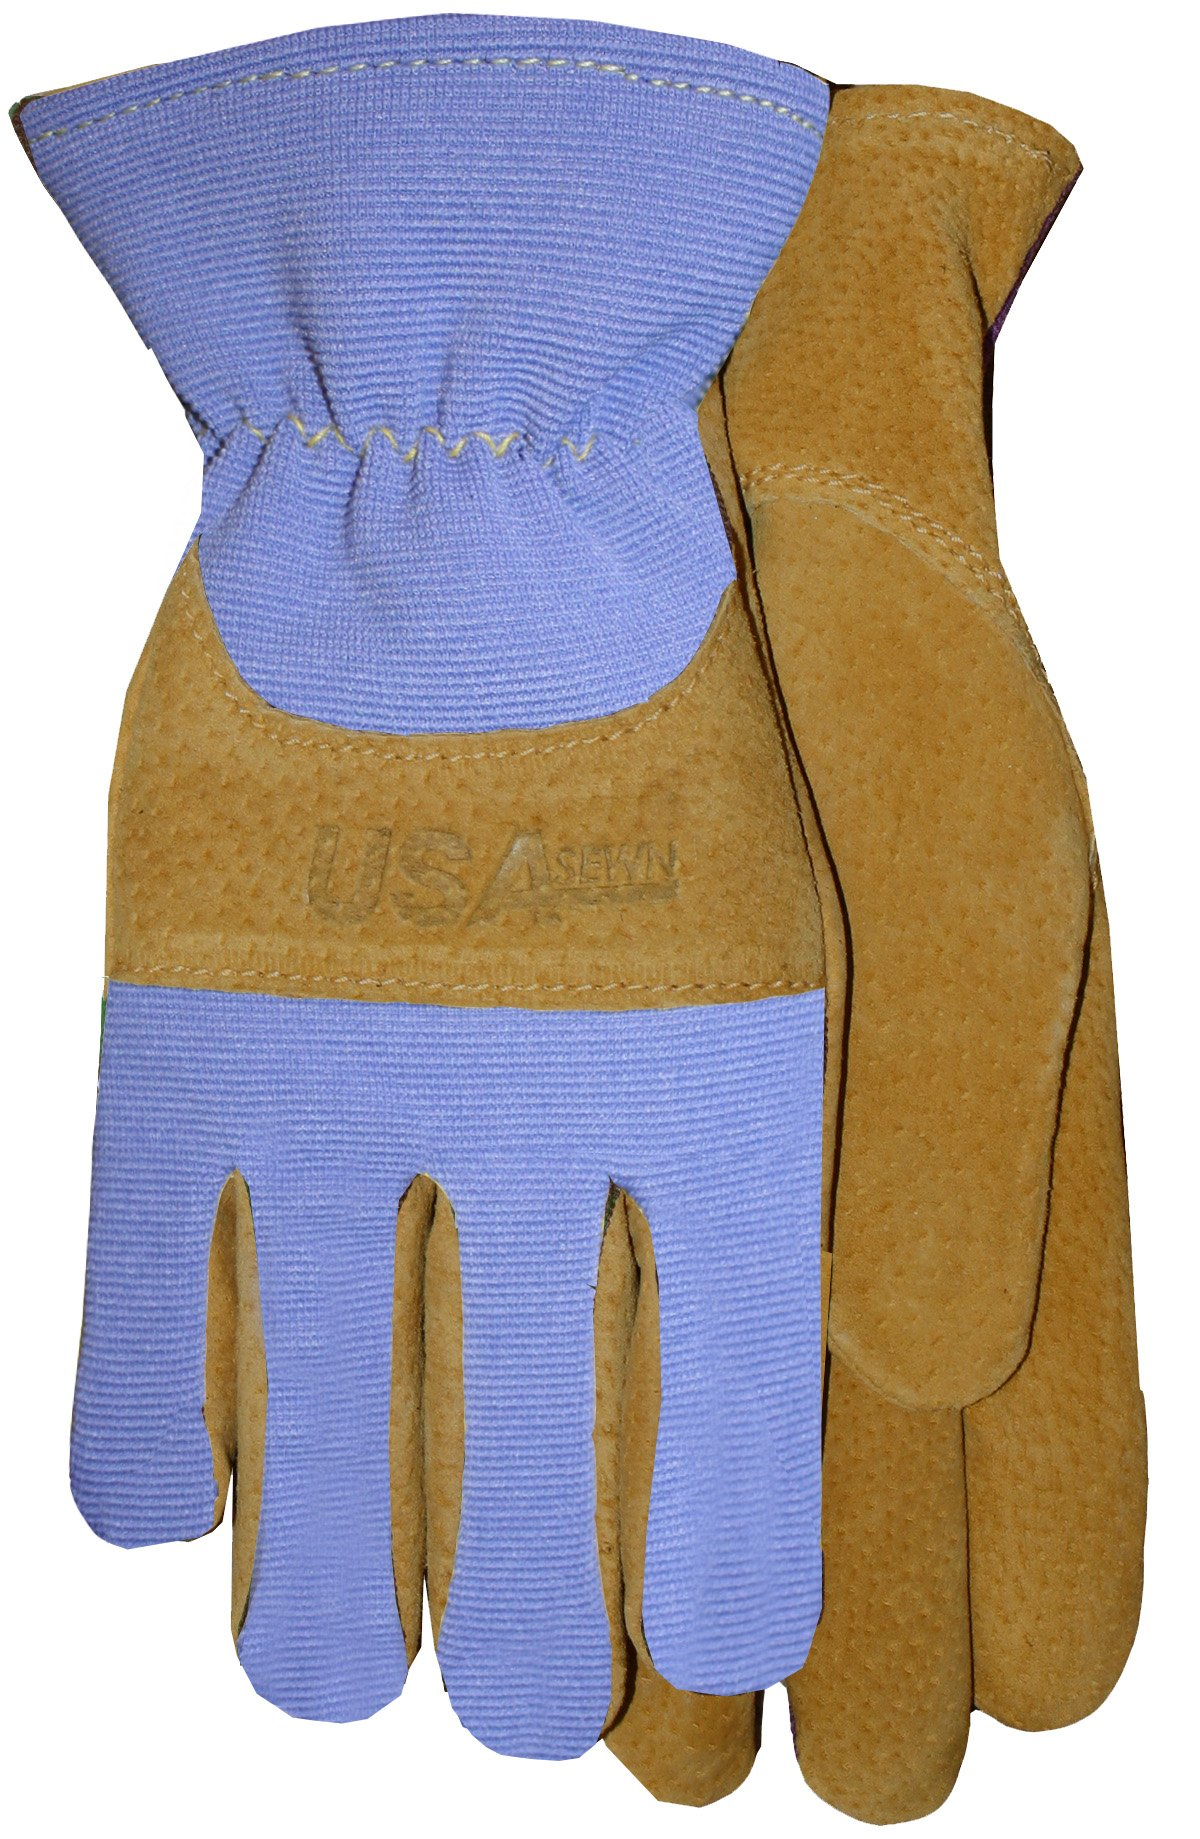 Midwest Gloves & Gear 188PER-8-AZ-6 Ladies Suede Glove, 8, Gold Leather with Periwinkle Spandex